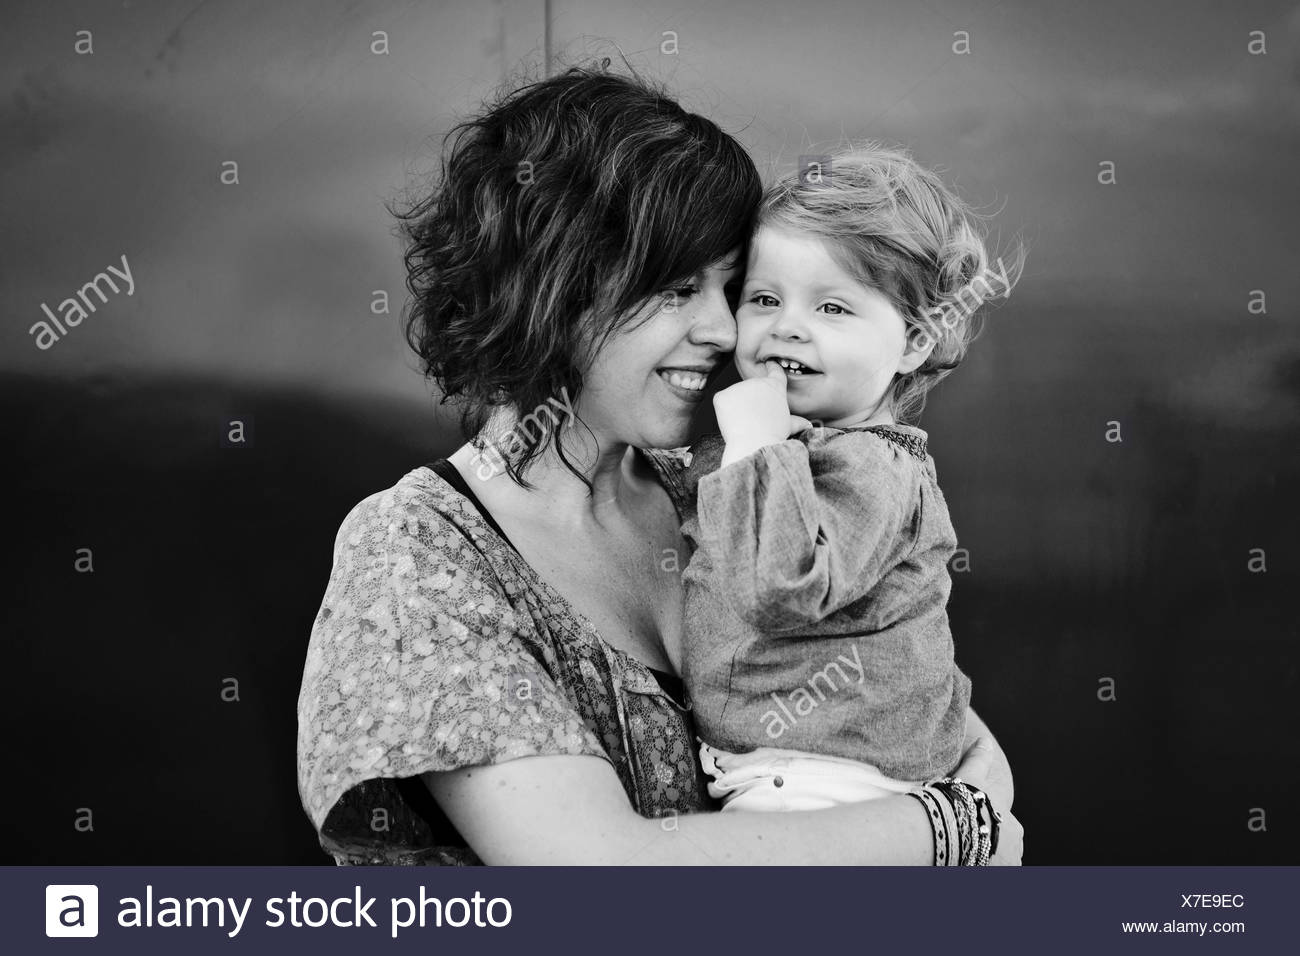 Tender moment between mother and toddler girl - Stock Image